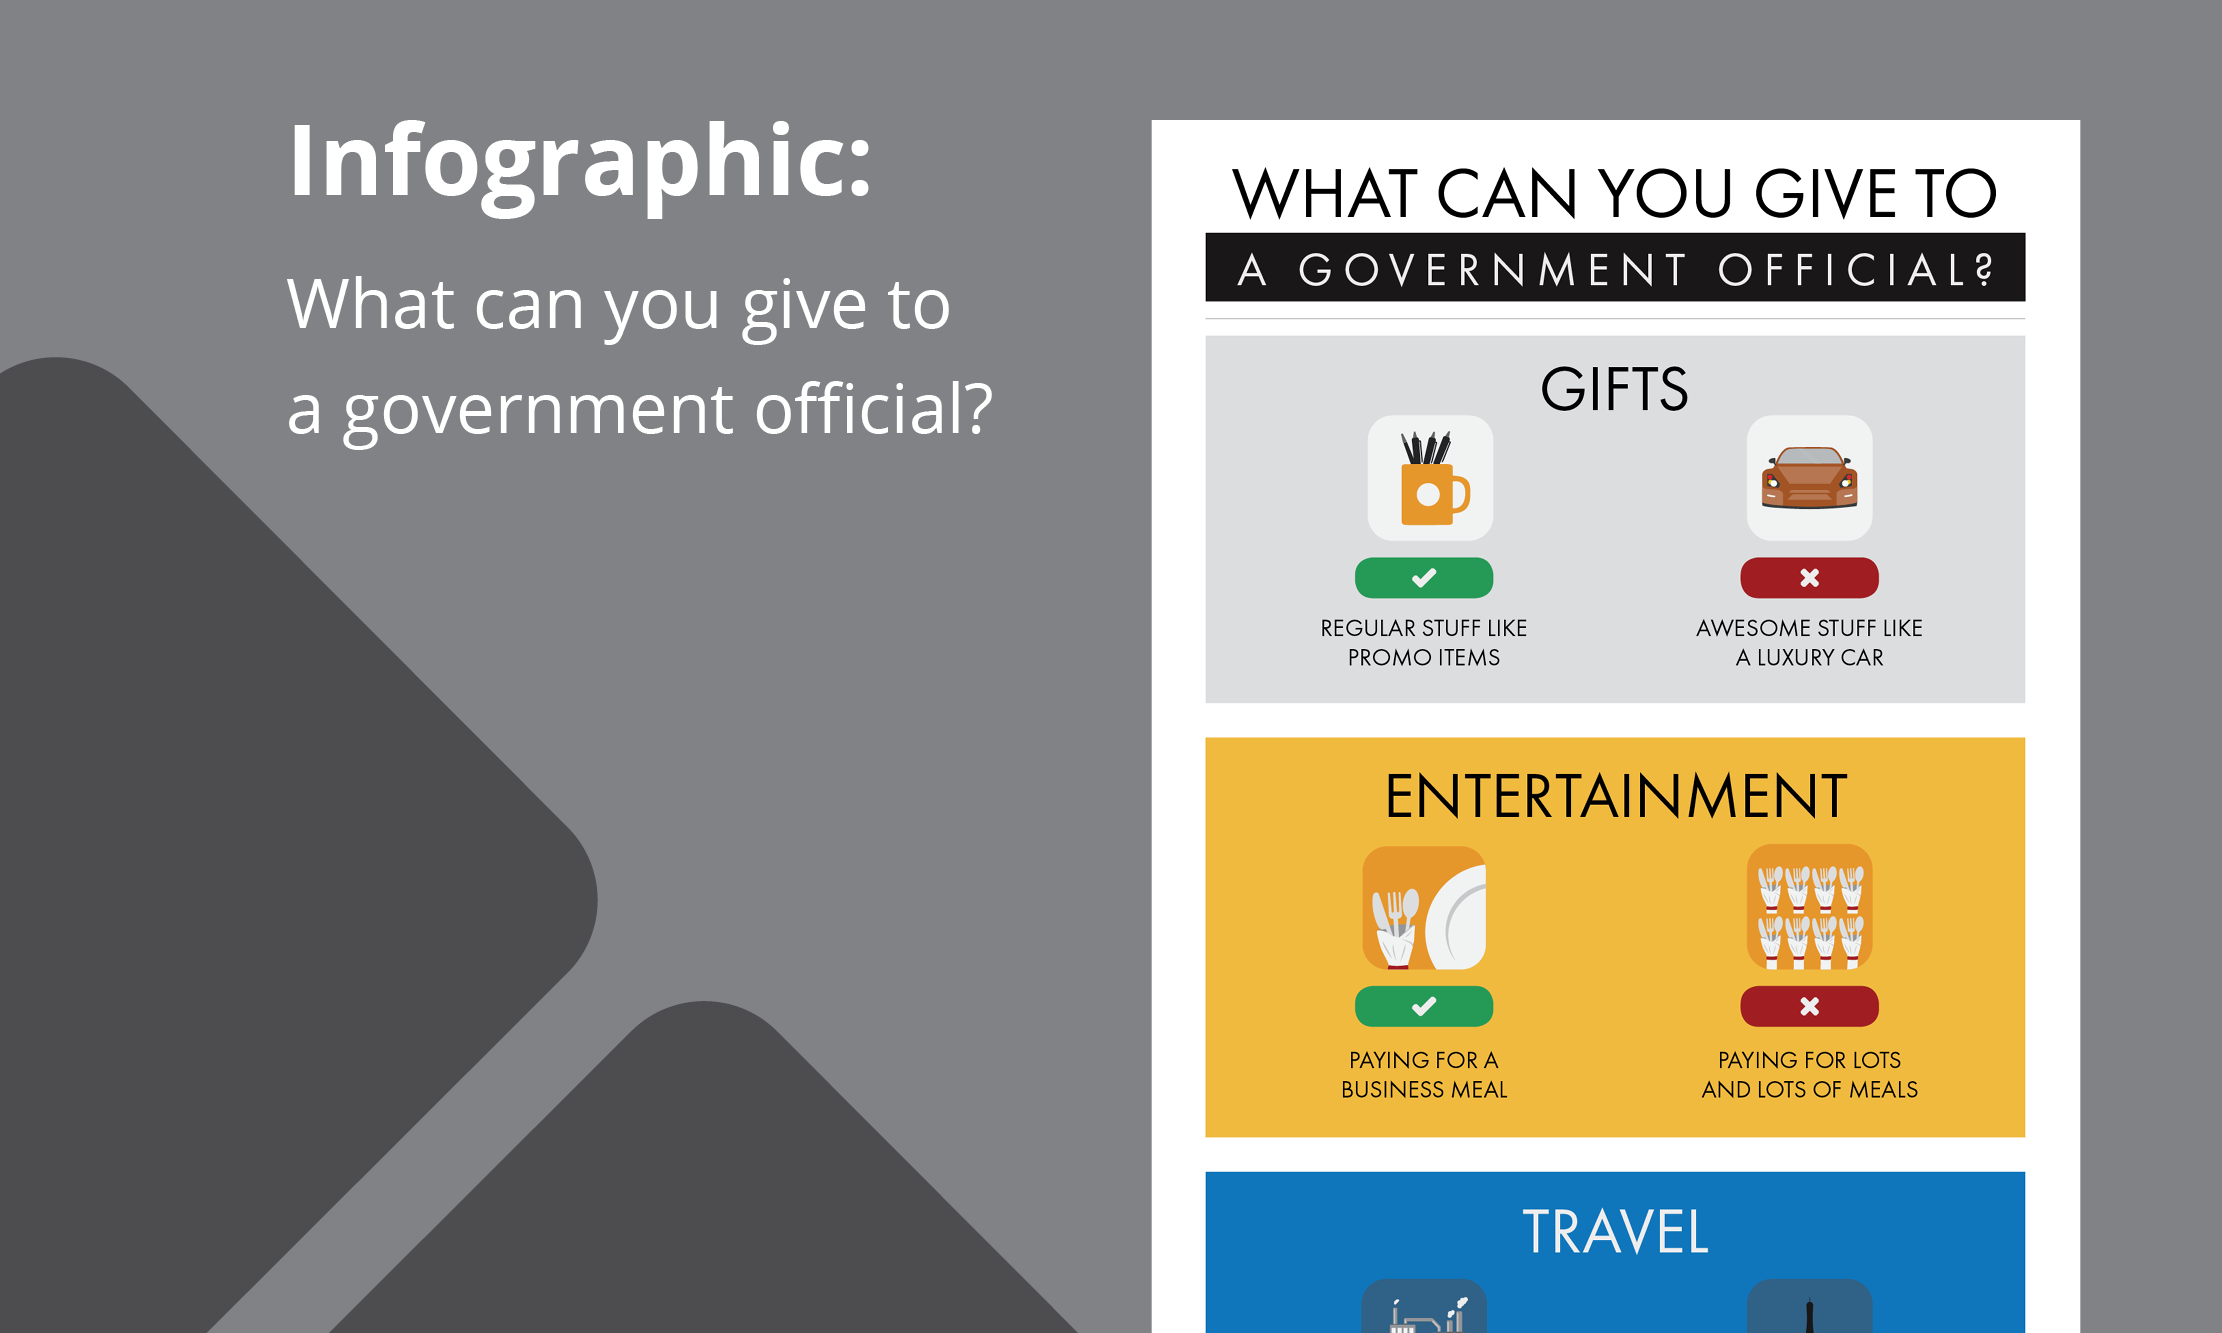 what-can-you-give-to-a-government-official-infographic.png